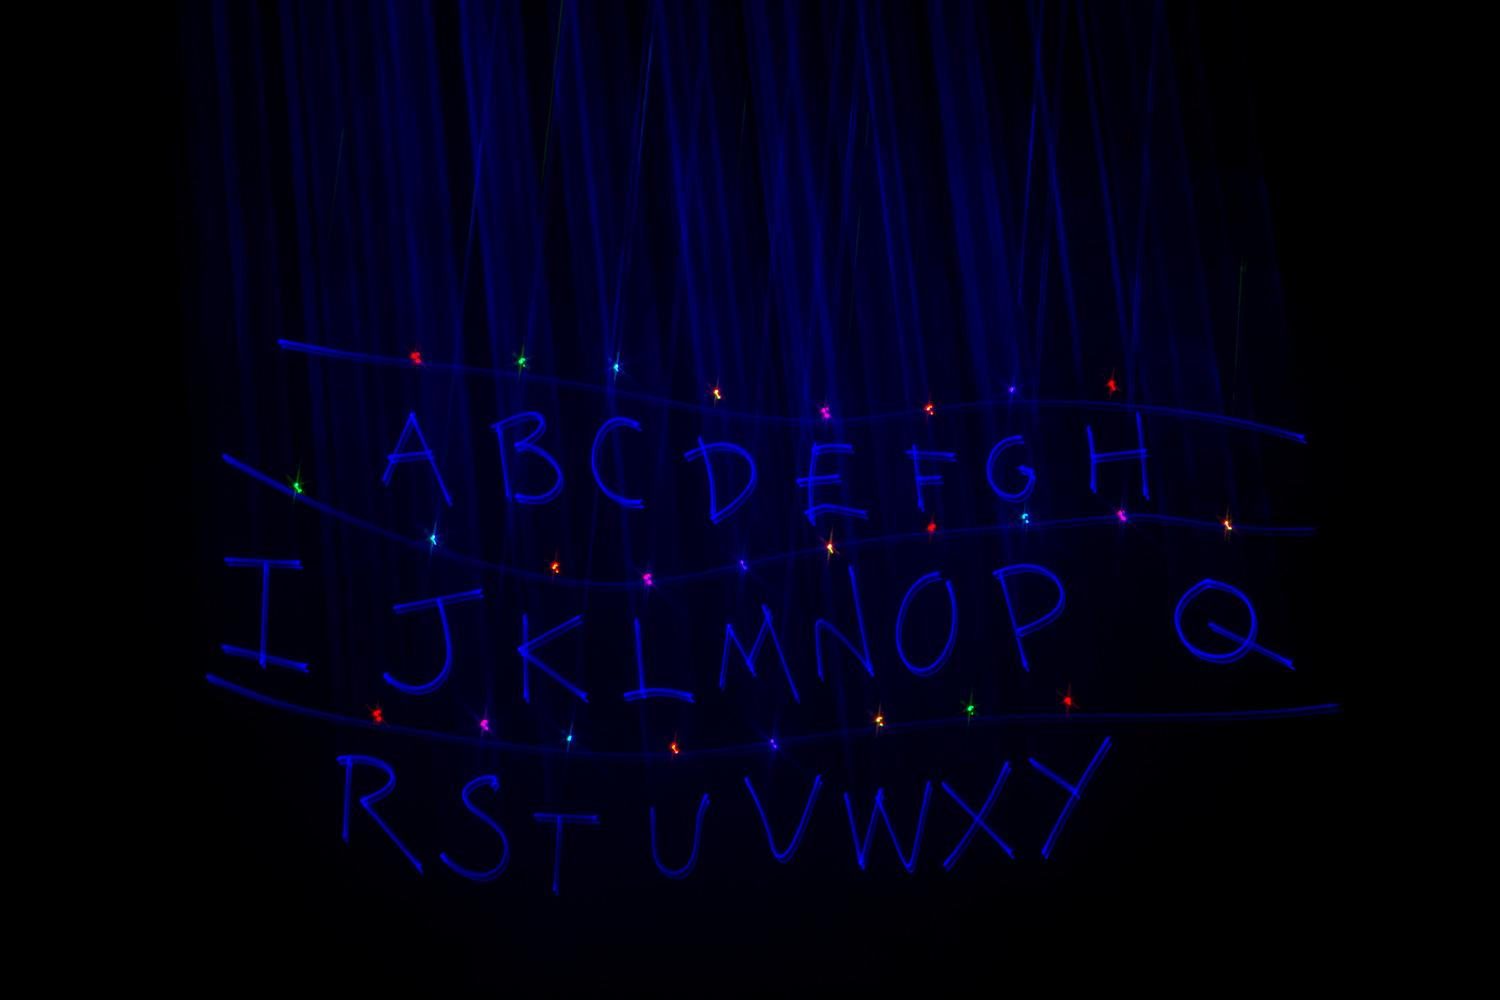 Just when you think Stranger Things can't get - err - stranger, someone dedicated a laser show to it's score! And that someone, thank goodness, is our very own Pacific Science Center. When the event posted several weeks ago, the tickets *quickly* sold out - here's to hoping there will be more! The synth-heavy score and 80s soundtrack of the Netflix hit almost seem like it was made specifically for a sea of lights. (Image: Sunita Martini / Seattle Refined)